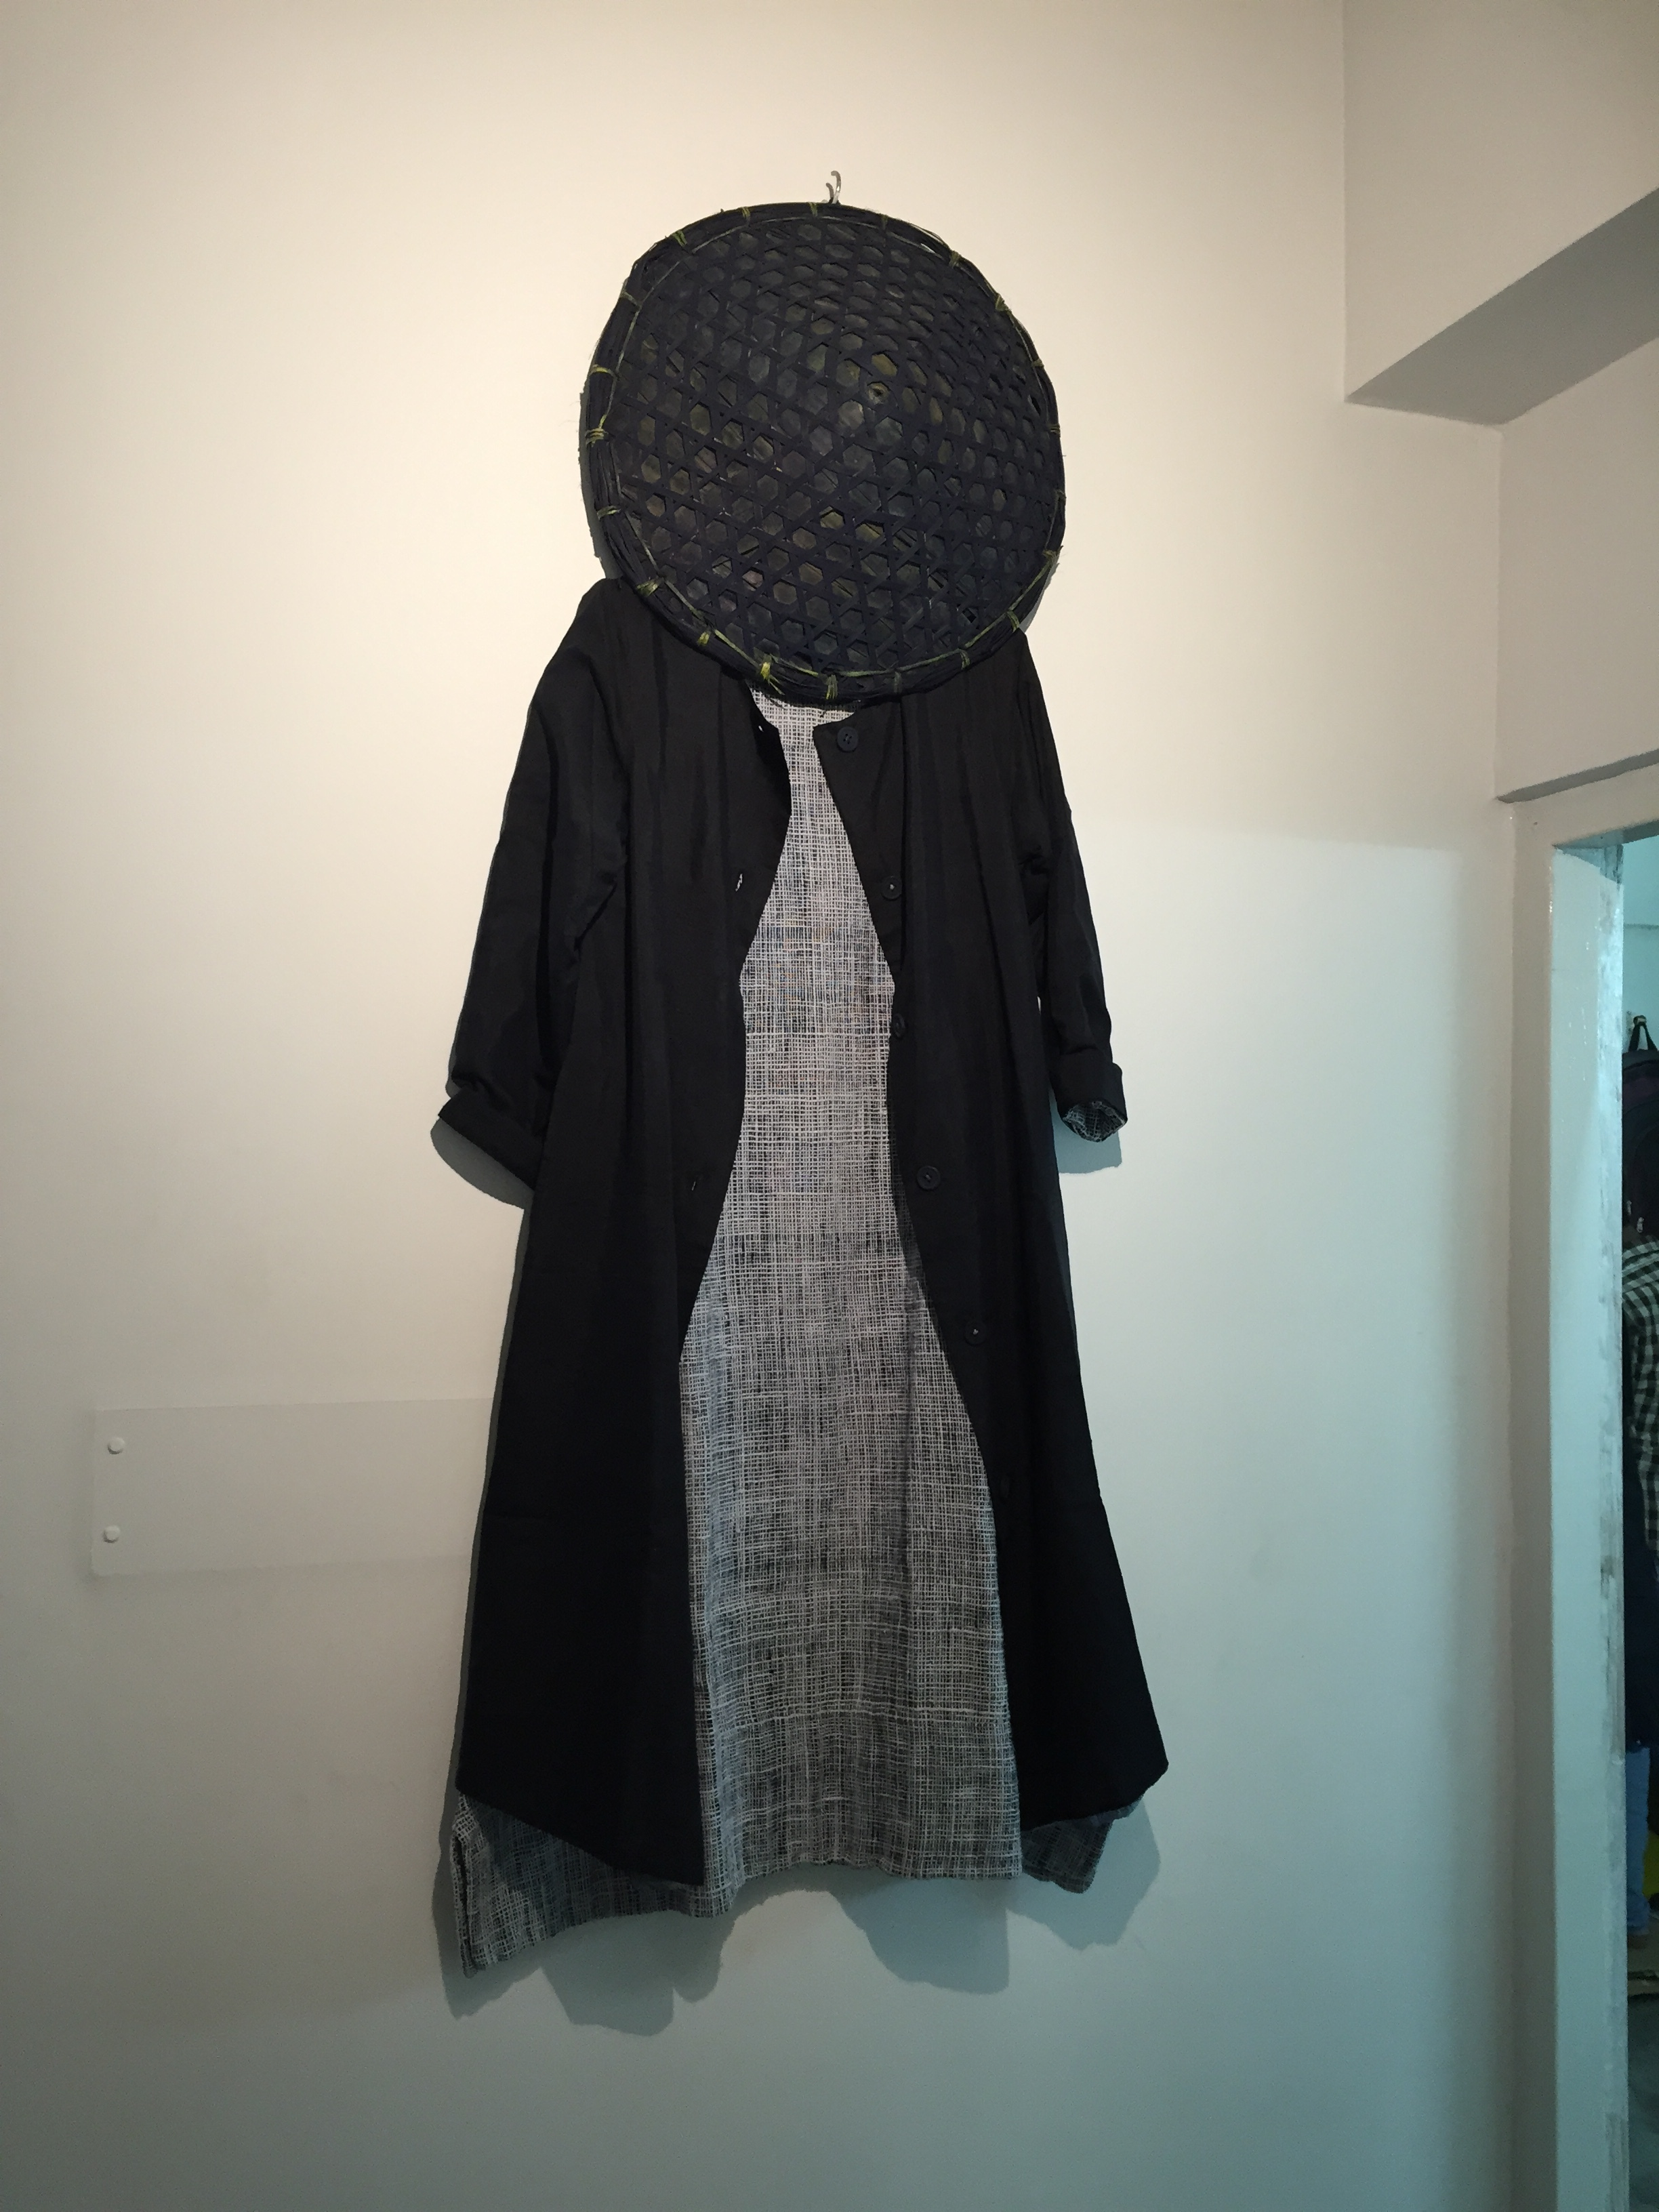 Dress and coat by Maku available in shop